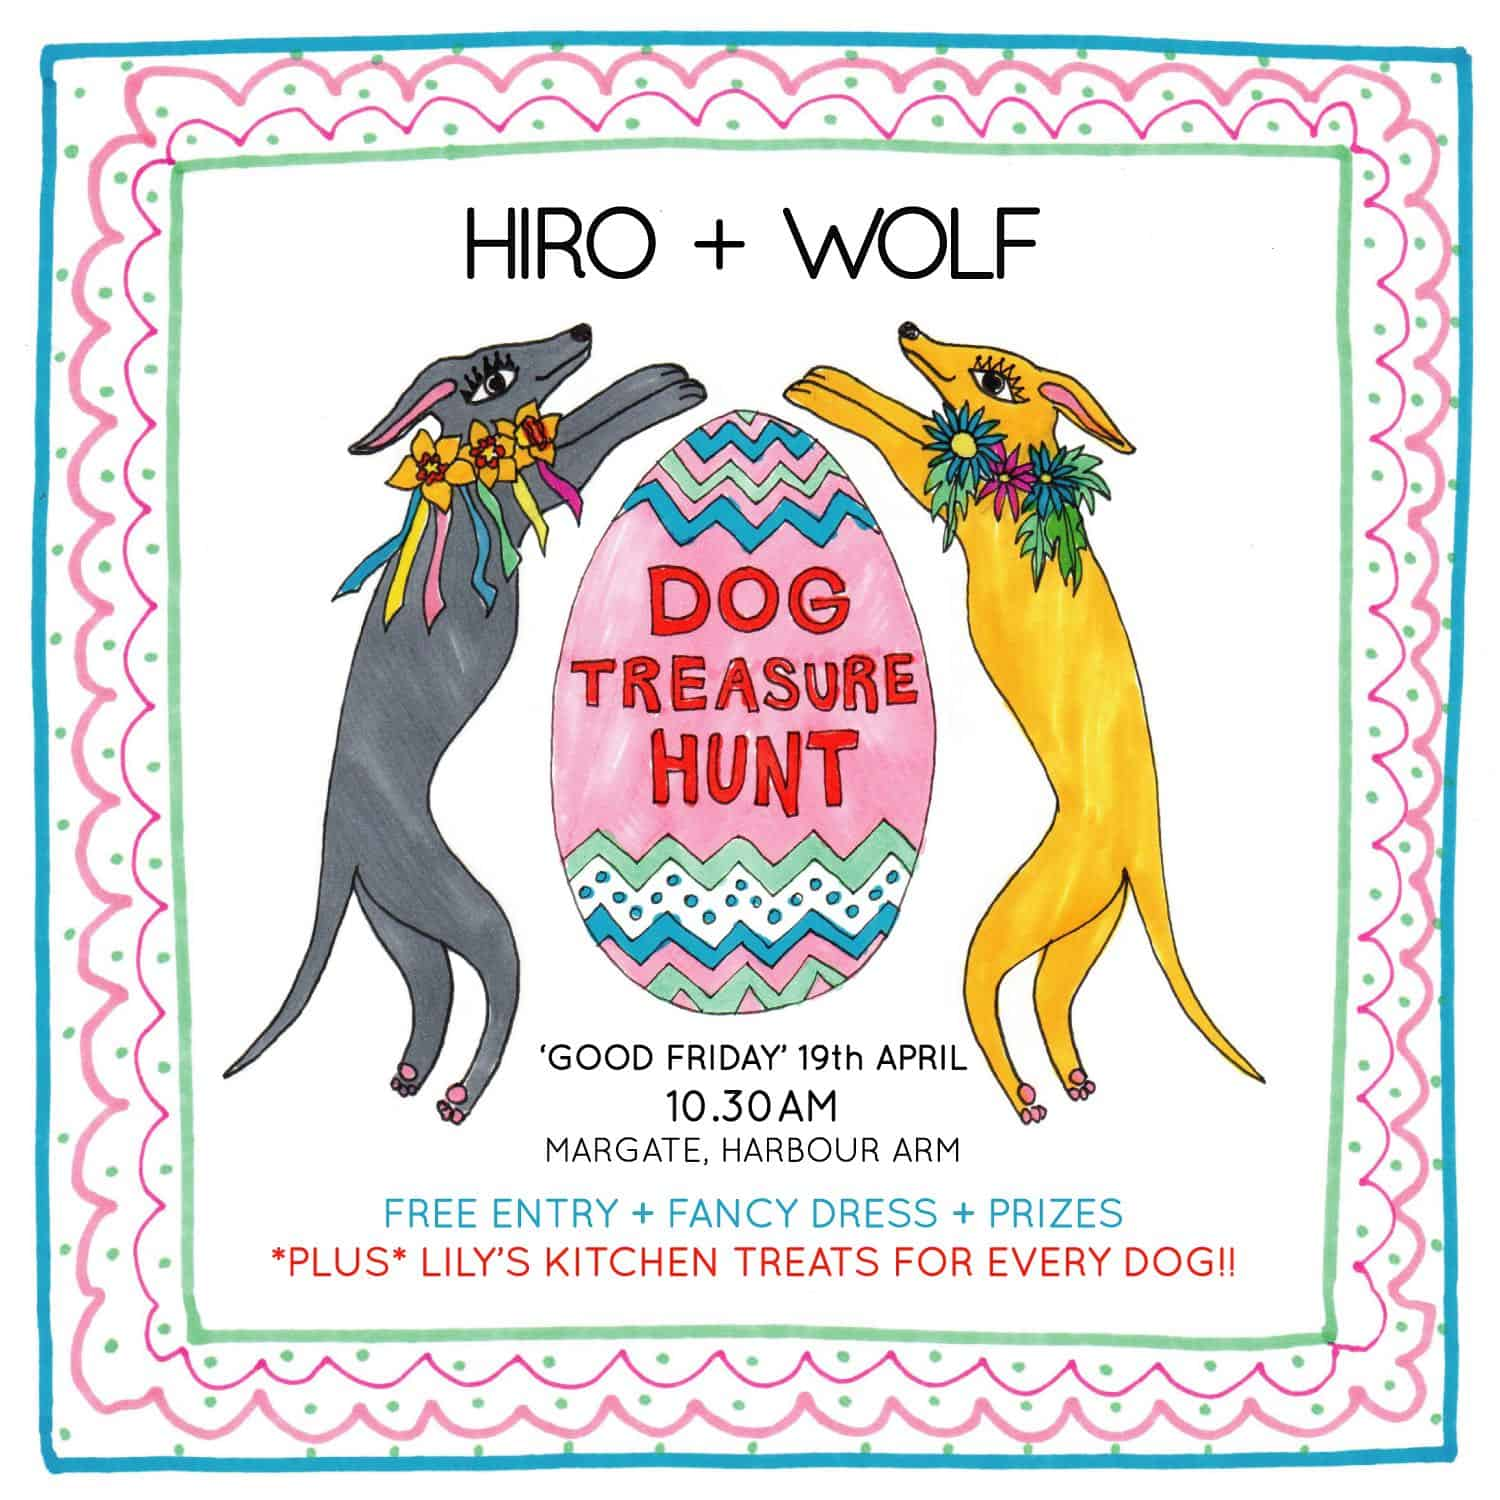 Easter-Treasure-Hunt-for-Dogs-Hiro-Wolf-Margate-2